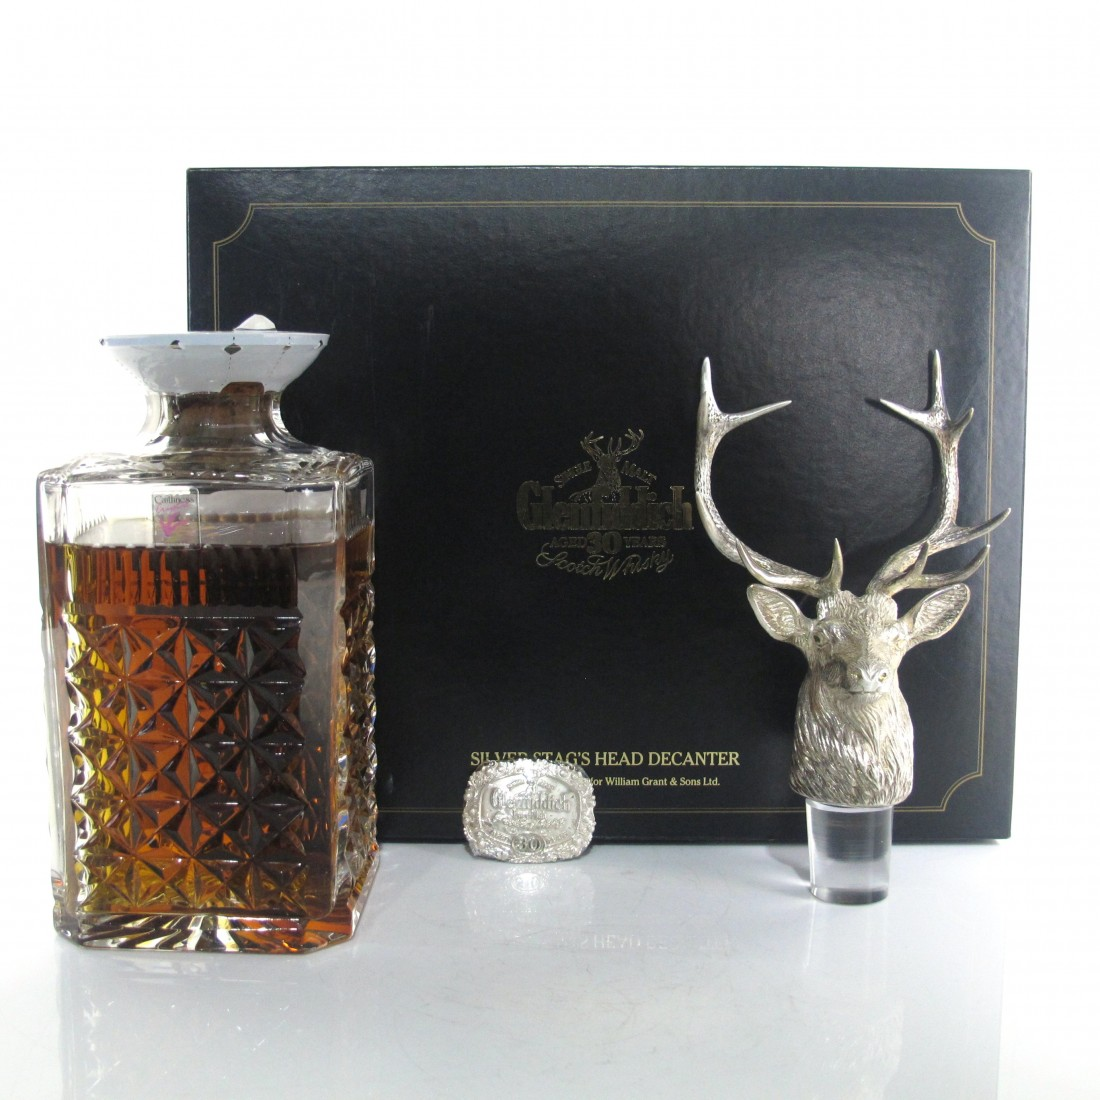 Glenfiddich 30 Year Old Silver Stag's Head Decanter